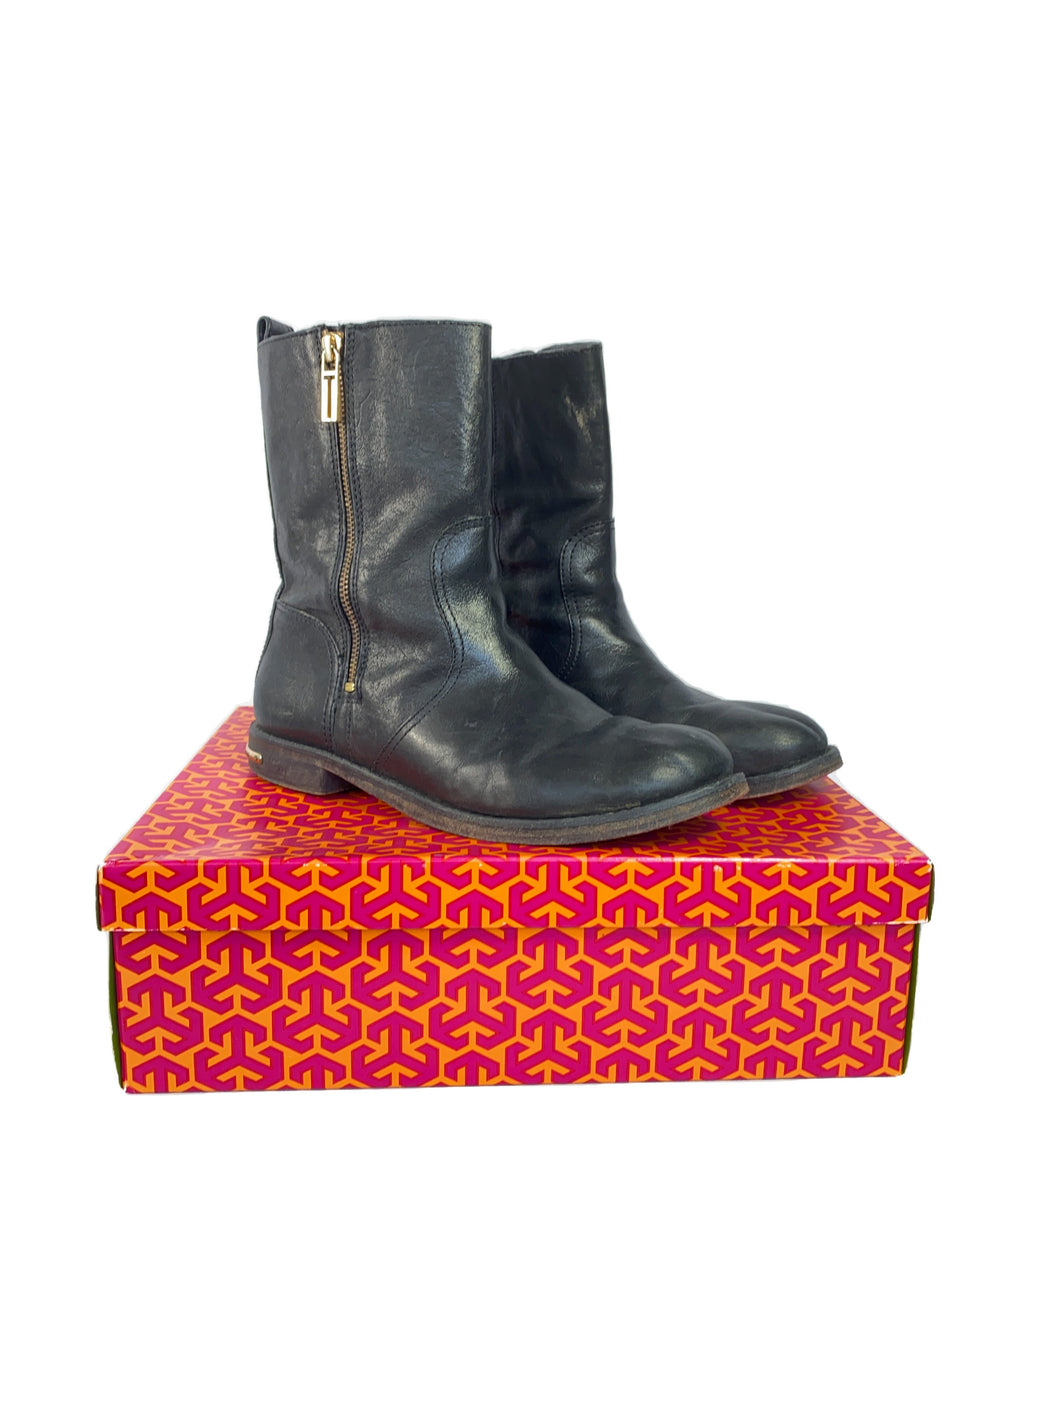 Tory Burch black leather boots size 9.5 BOX